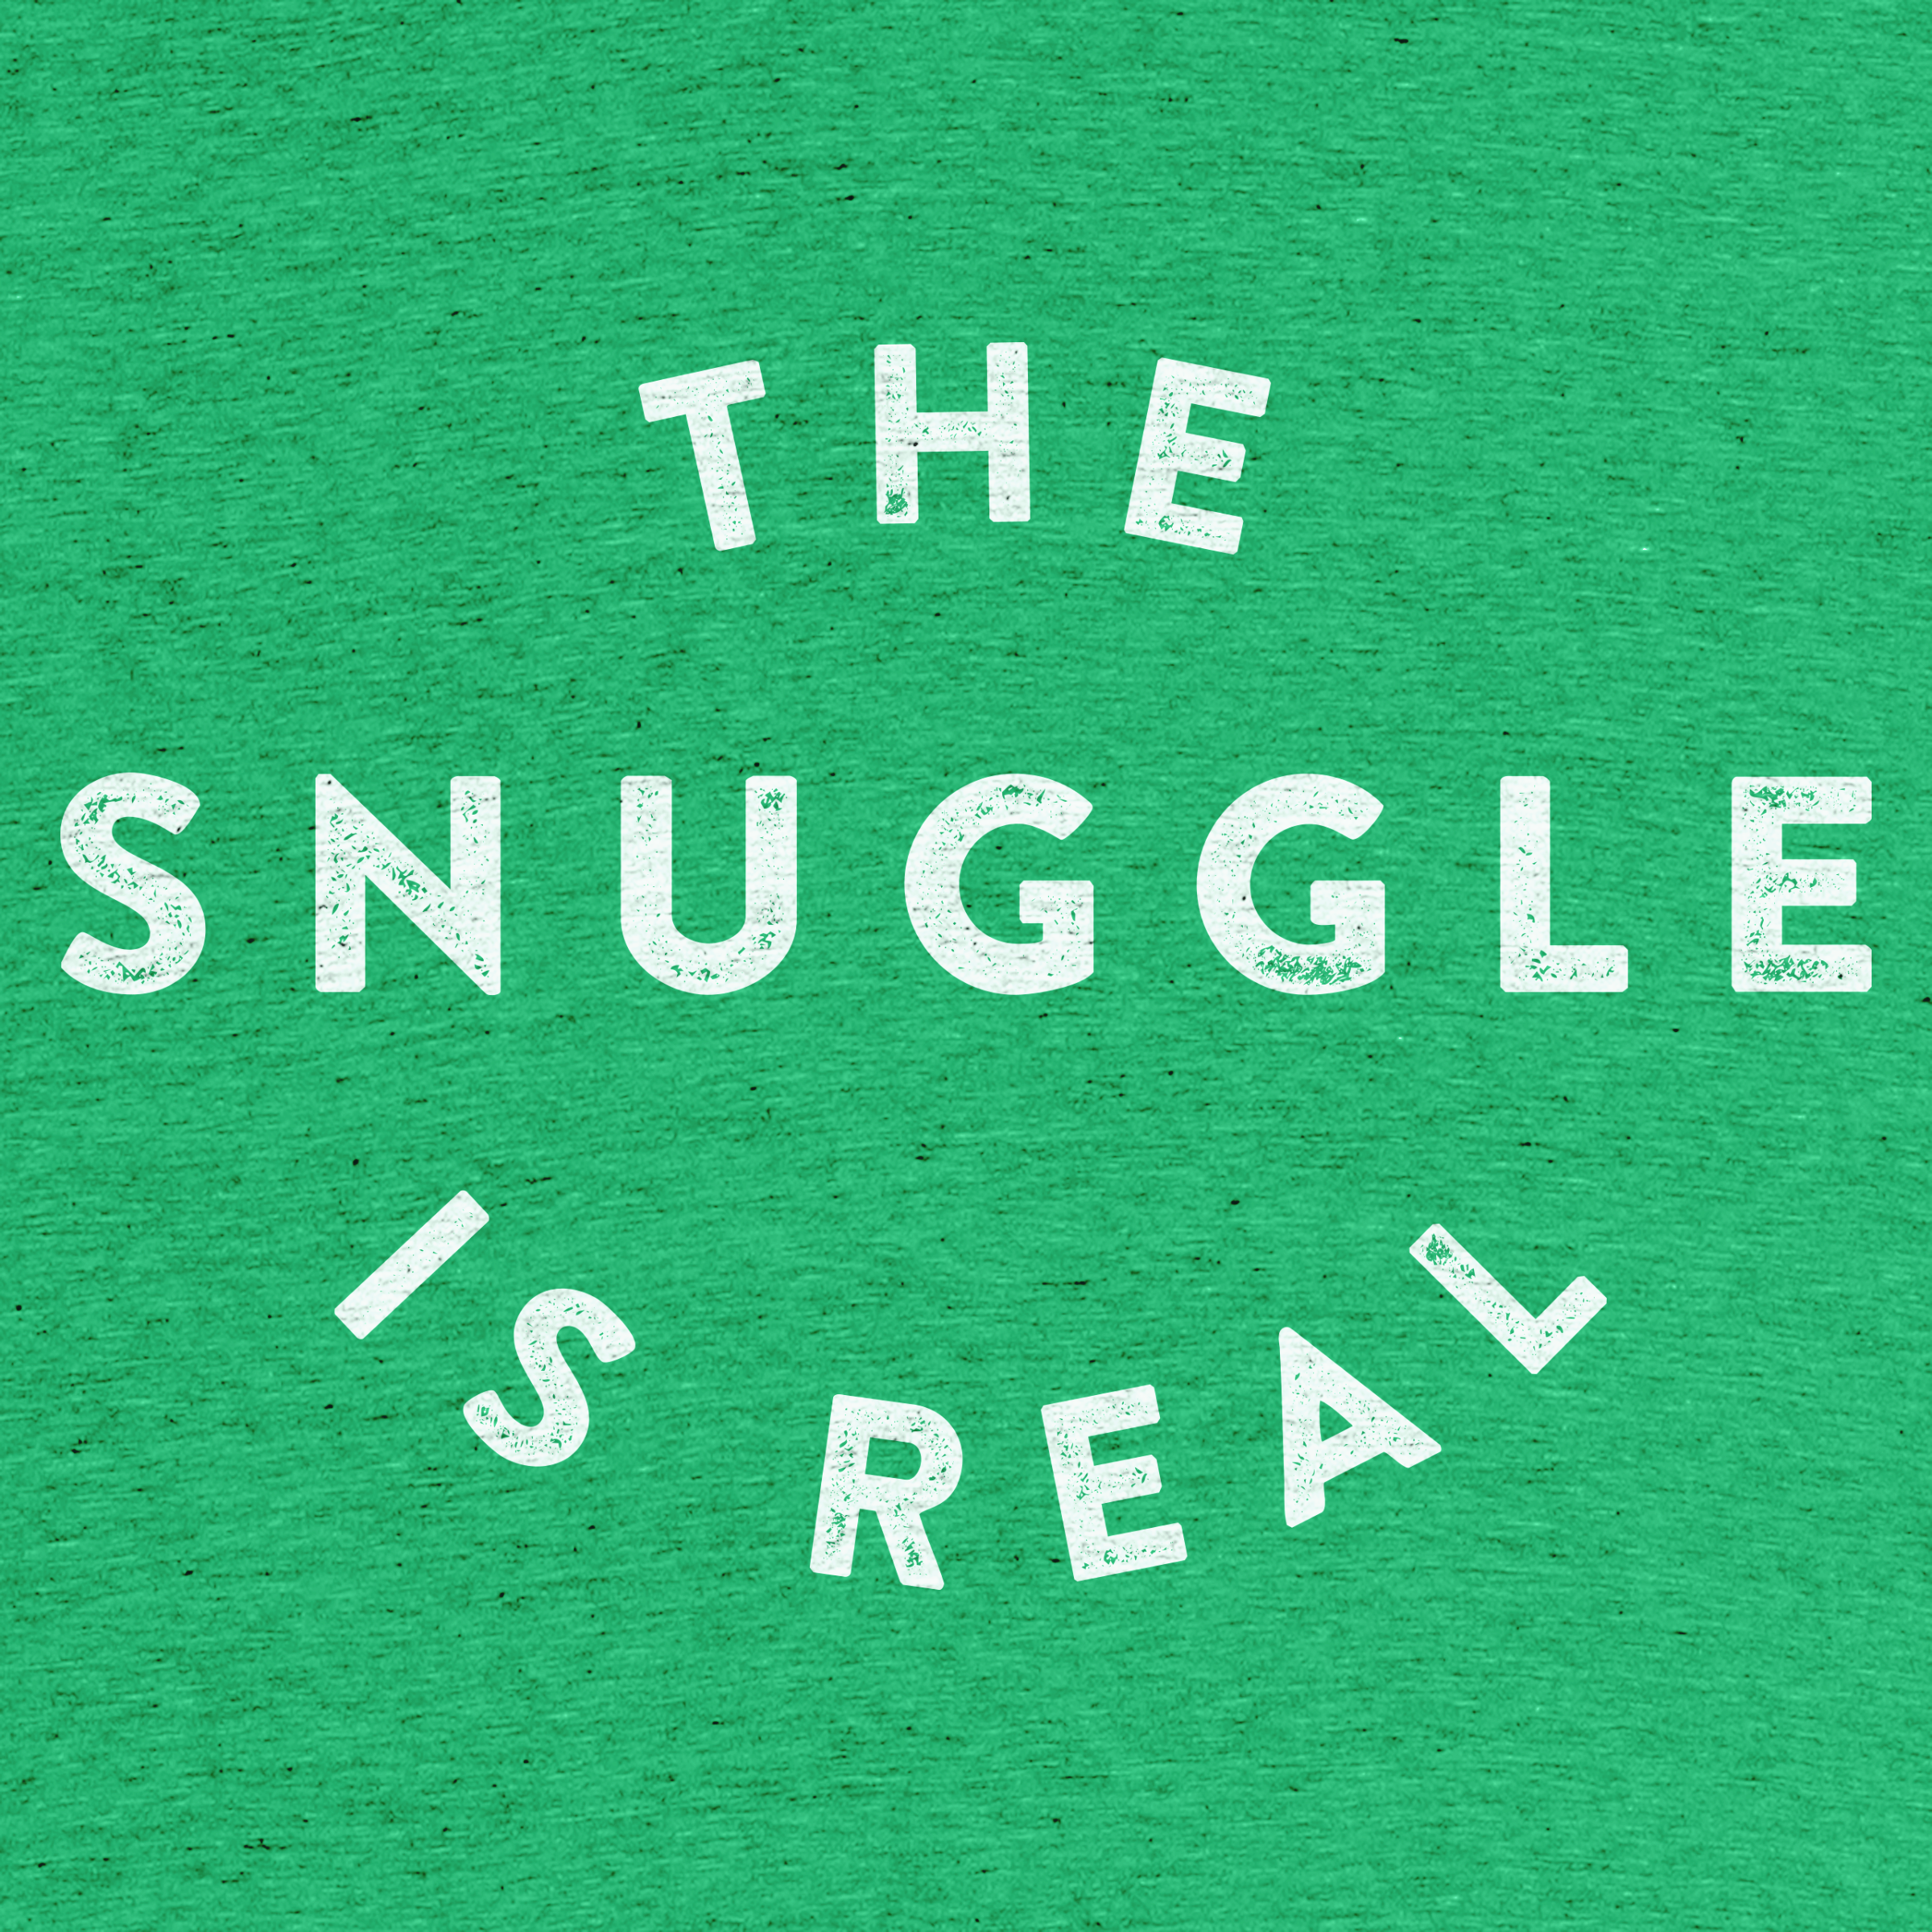 The Snuggle is Real Detail